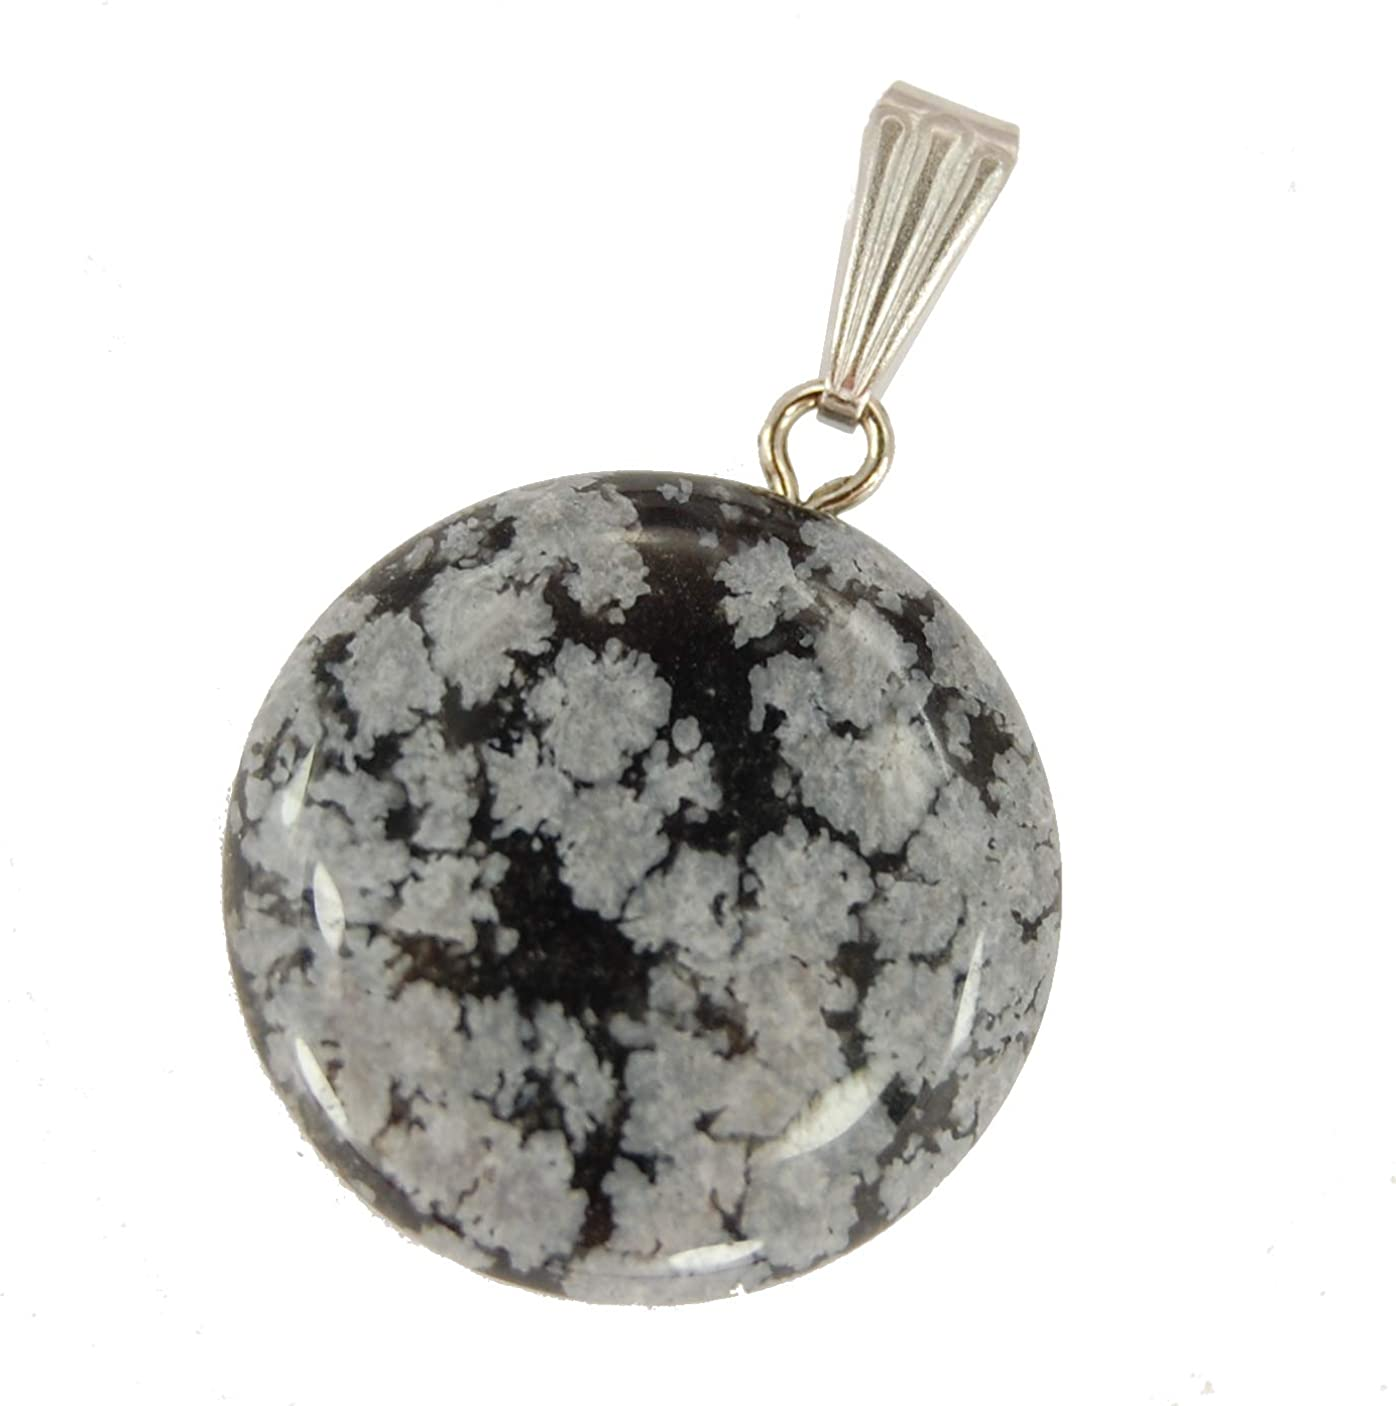 Heart Pendant Necklace Carved Snowflake Obsidian stone Necklace